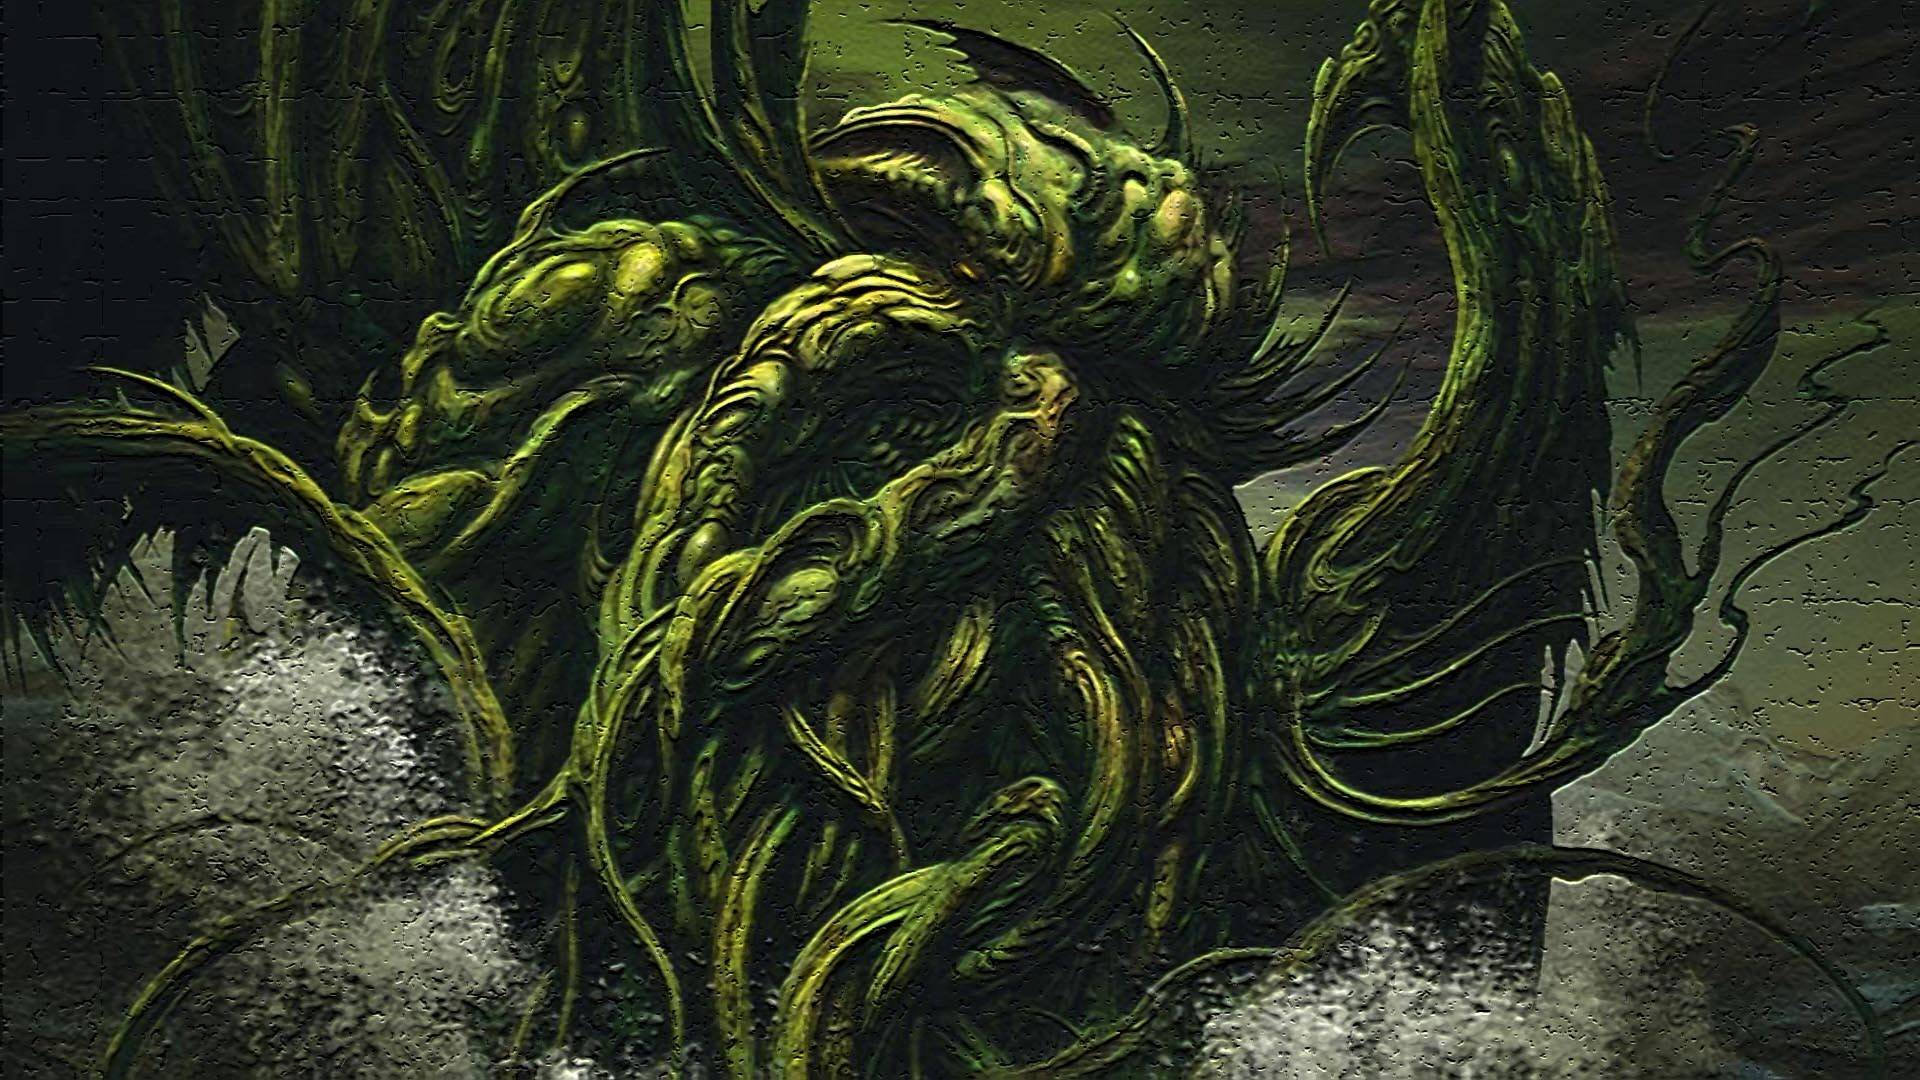 cthulhu wallpaper to download (Essex Walter 1920×1080)